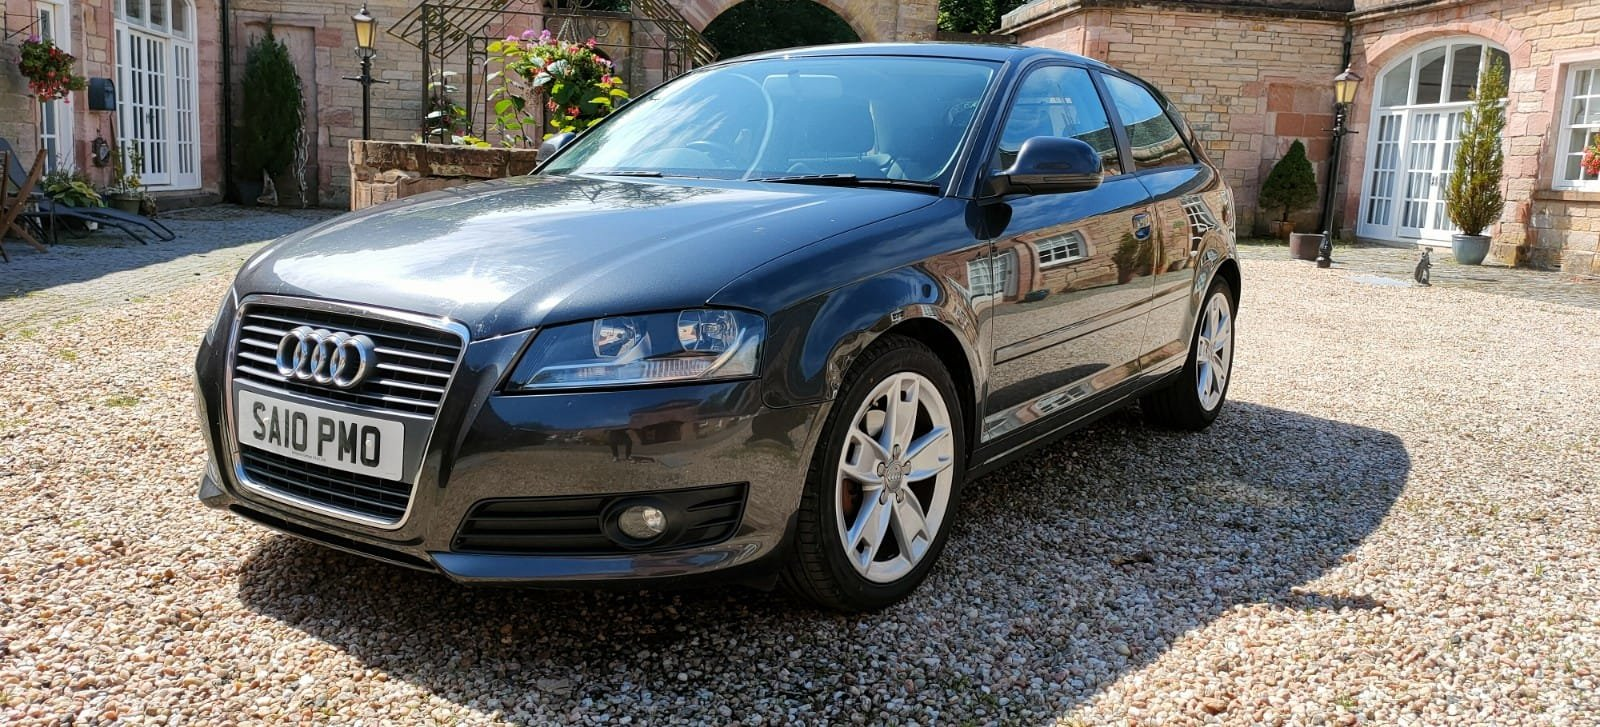 Audi, A3, TFSI Sport, 2010, 1.8T, Superb Condition For Sale (picture 1 of 5)